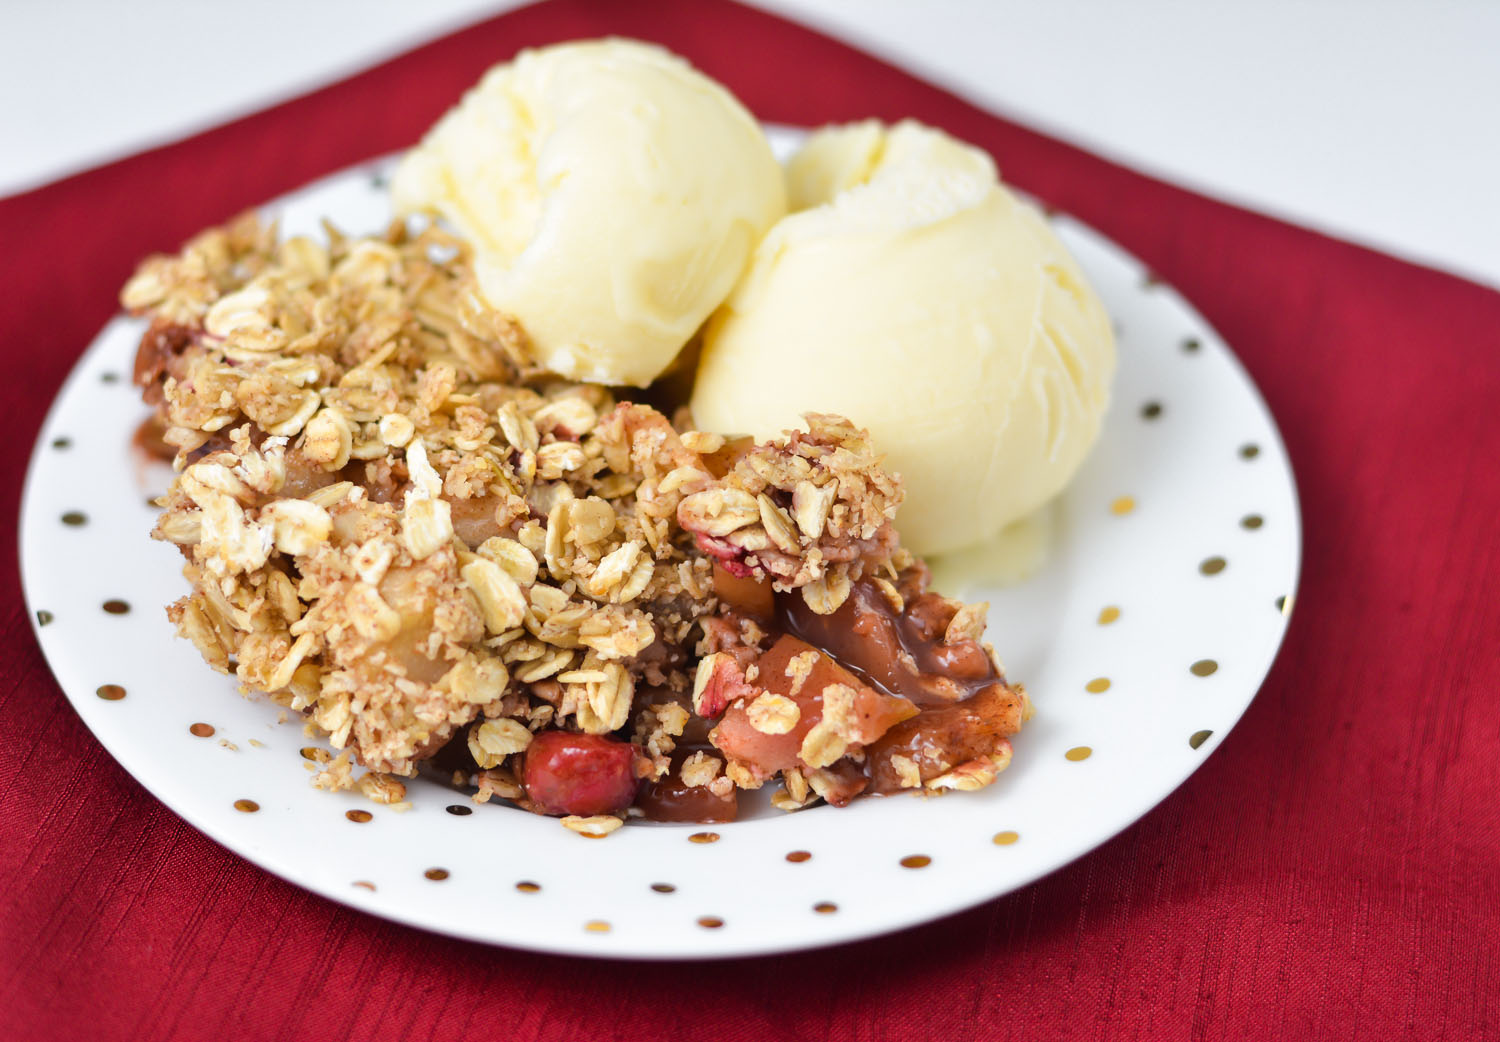 This warm and comforting Cranberry, Apple & Pear Crisp is the perfect THM E dessert - with easy ingredients that can be sourced locally! THM E, low fat, allergy friendly, no refined sugar